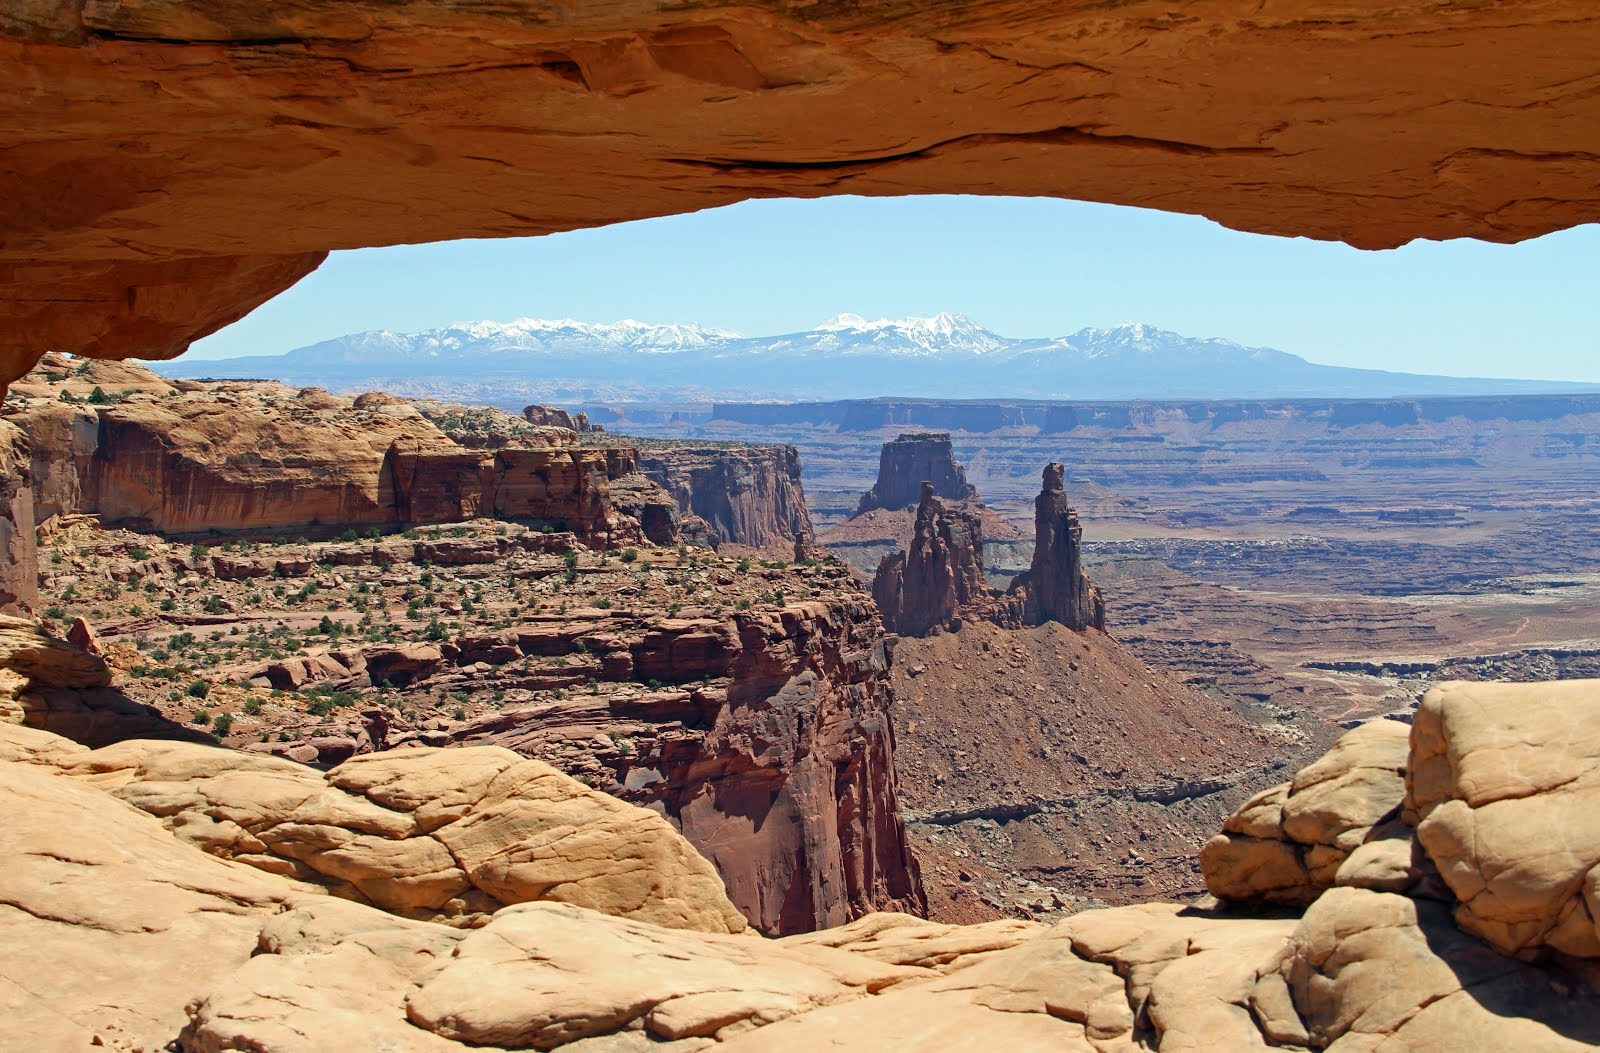 View of the La Sal Mountains through Mesa Arch carved into the Navajo Sandstone in Canyonlands